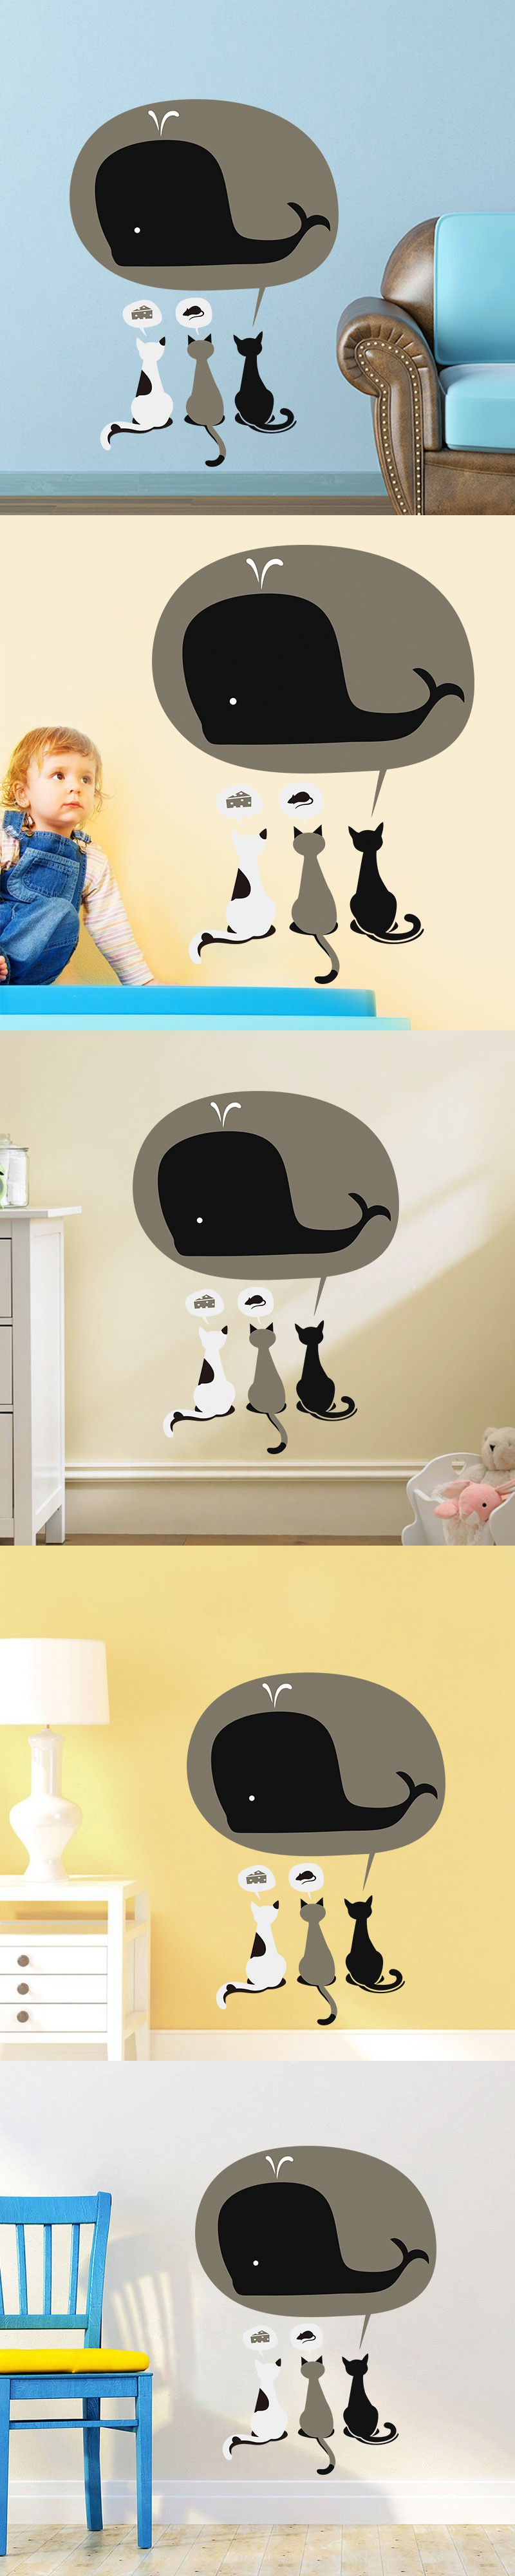 New Funny Home Decor Cartoon Plane Wall Stickers 3 Cute Cats and A ...